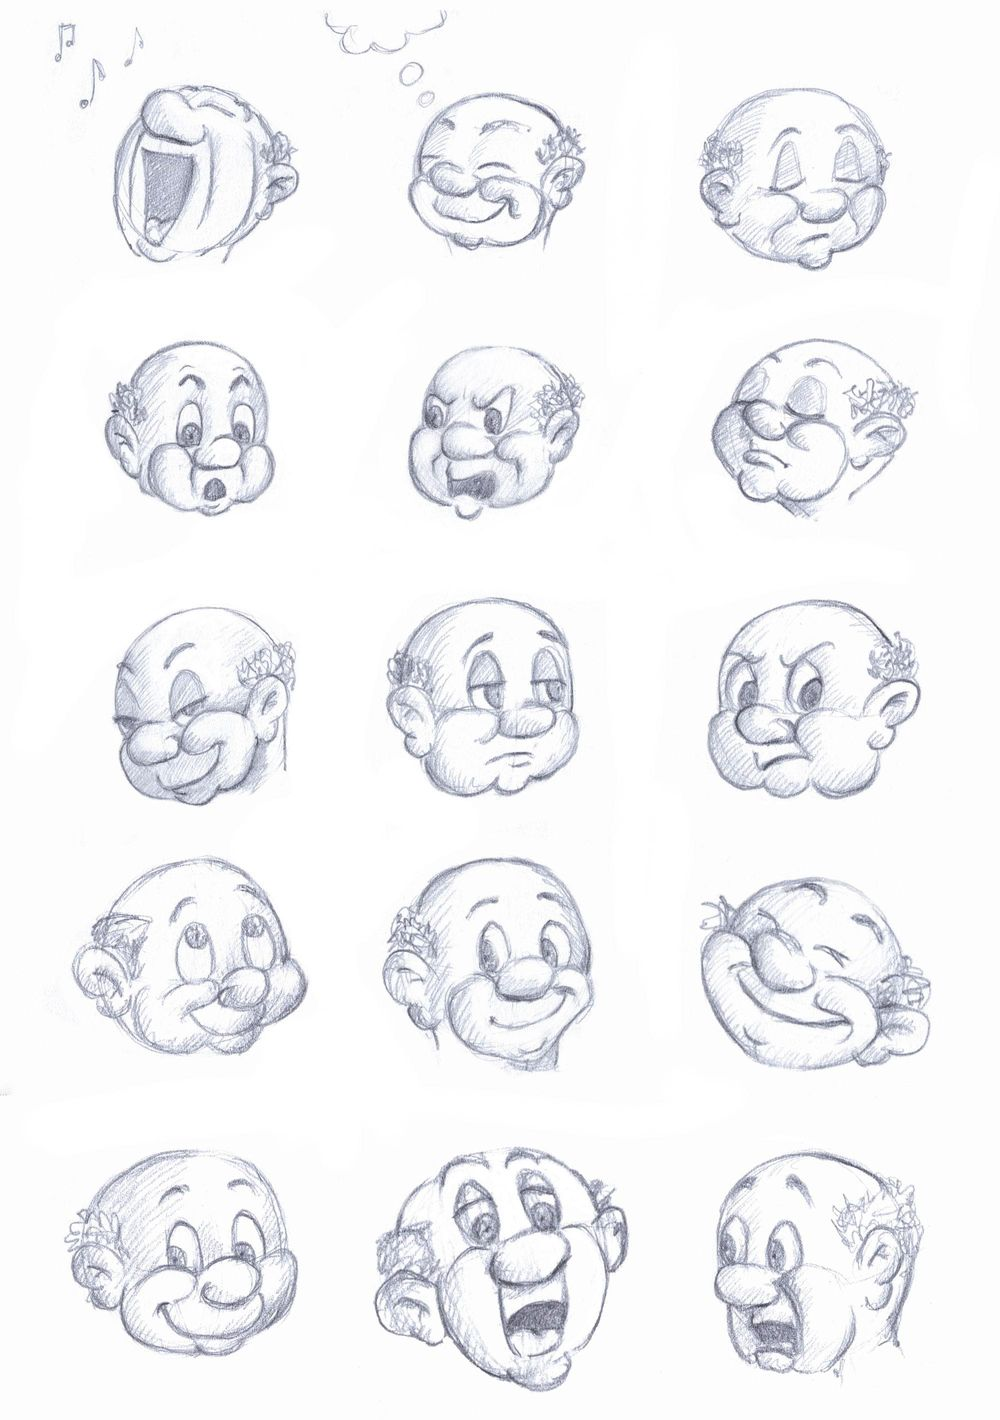 Practicing Facial Expressions - image 1 - student project